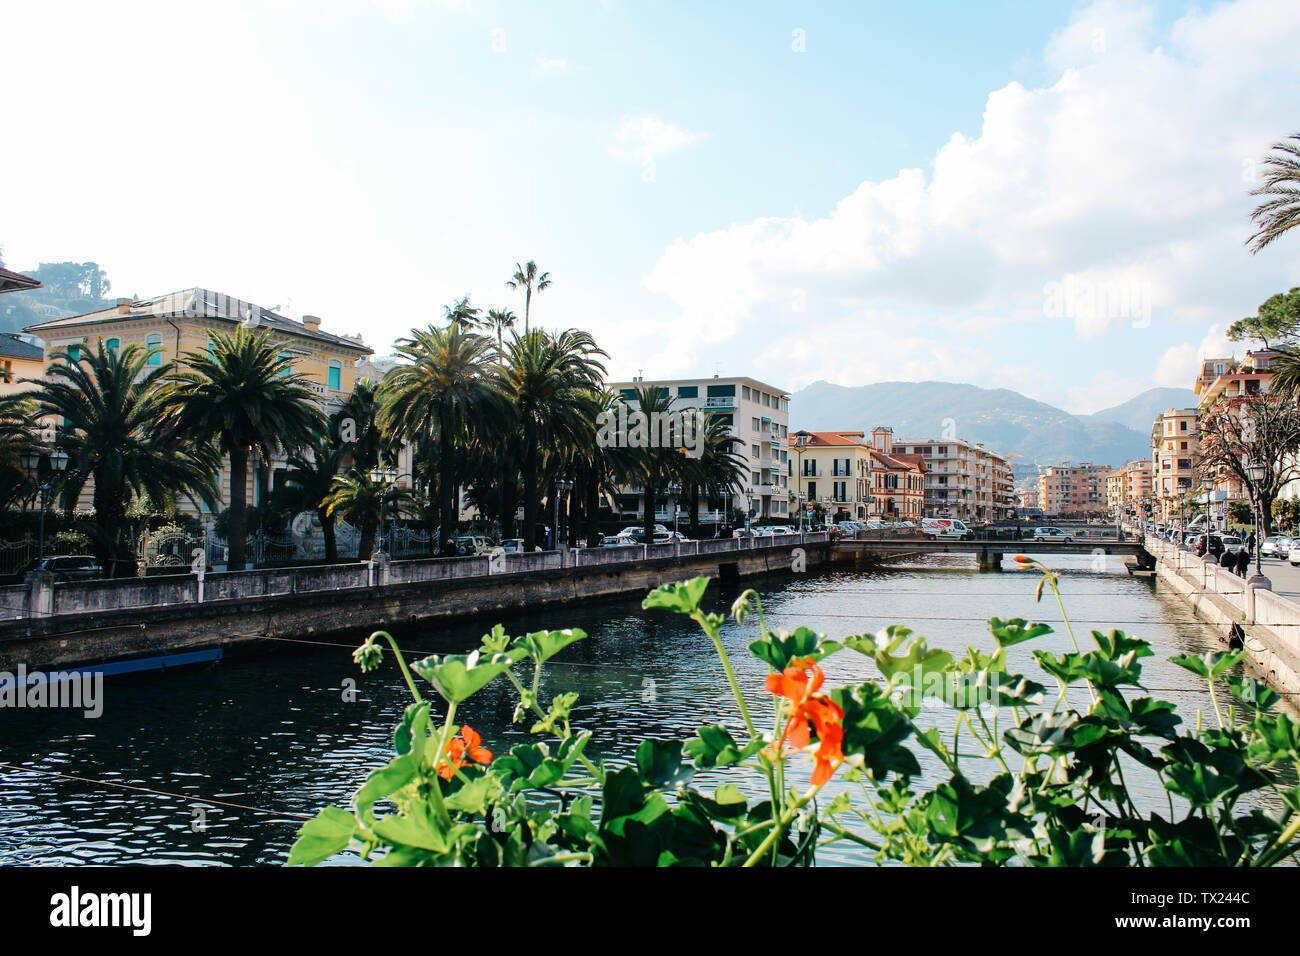 Rapallo, Italy - 03 27 2013: flowers by the river Boate. View of the streets of Rapallo. - Stock Image